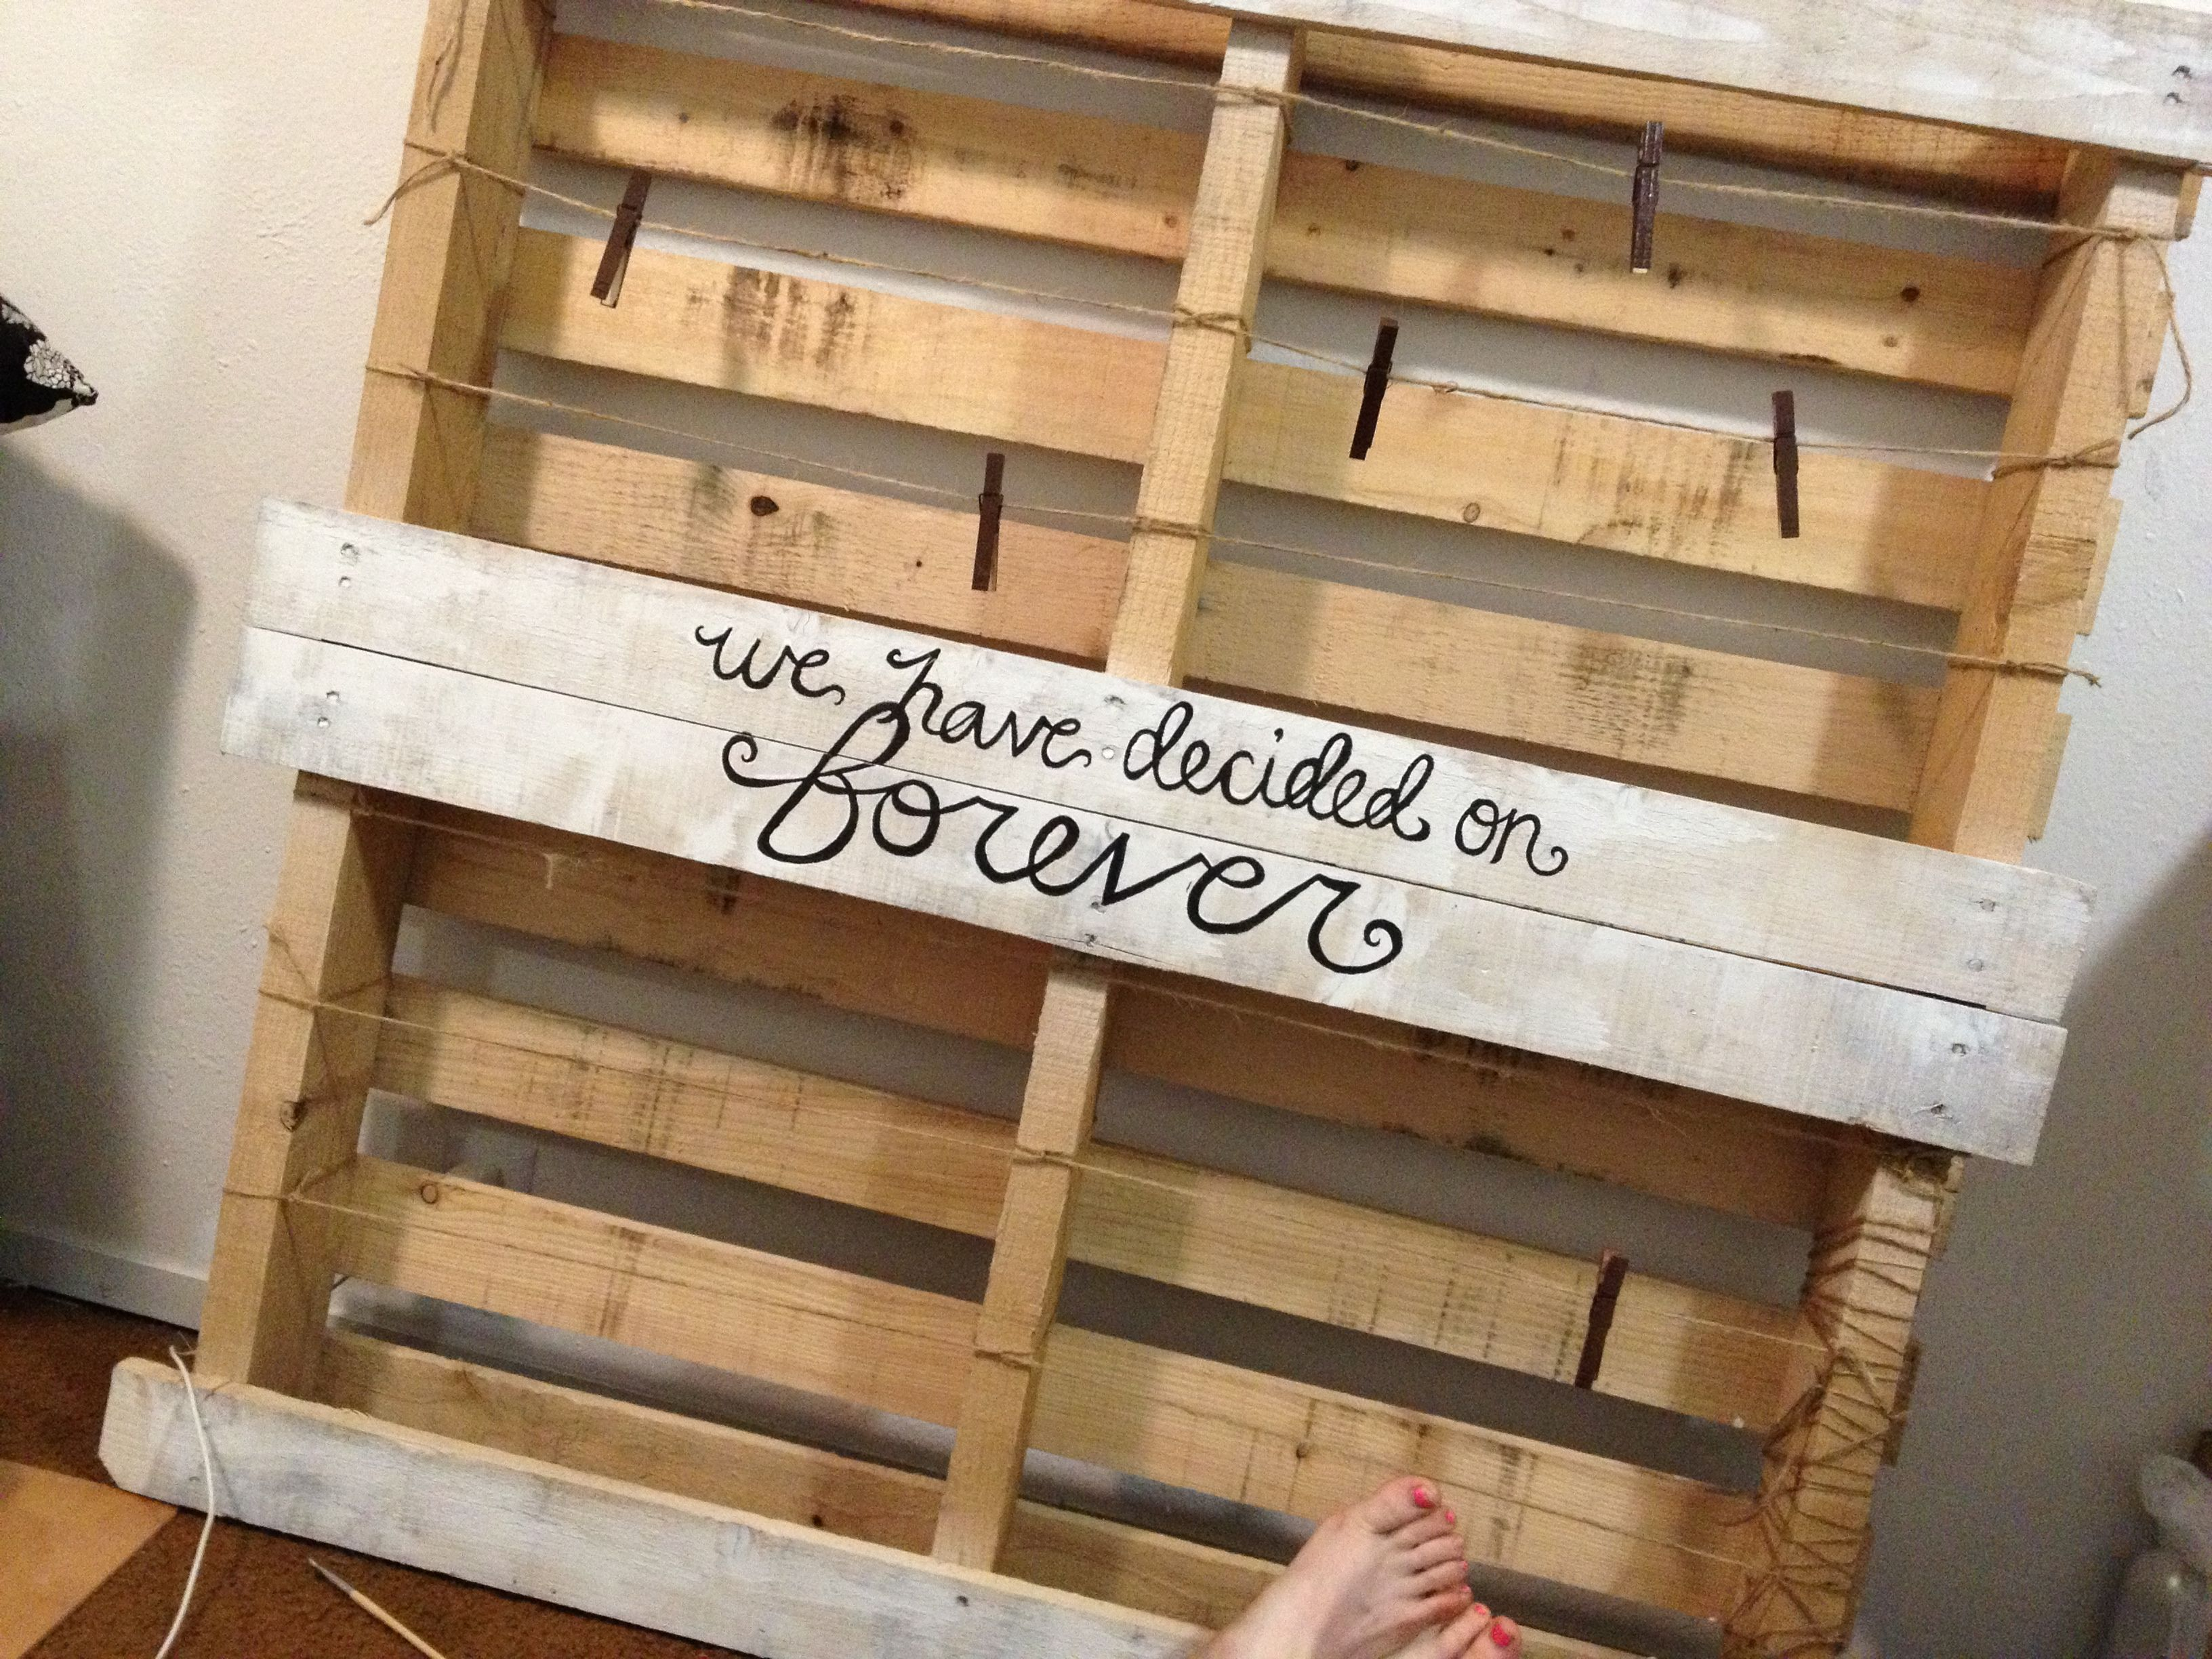 Pallet wedding decor ideas  Photo display made from an old pallet Using the backside and burlap